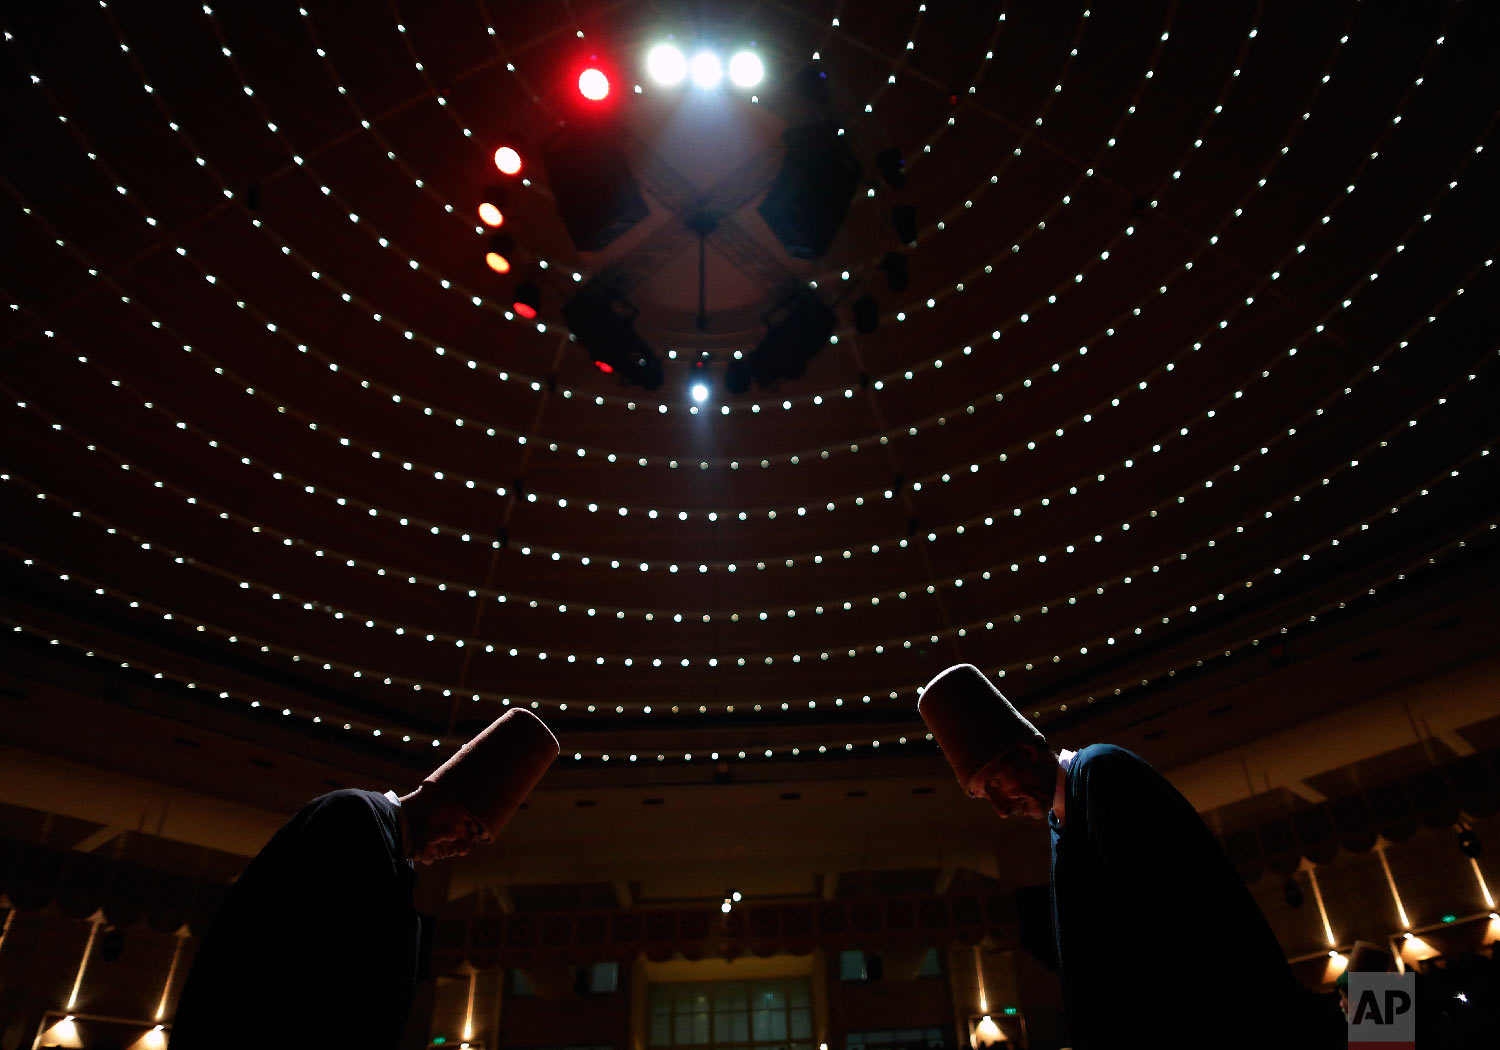 Whirling dervishes of the Mevlevi order bow during a Sheb-i Arus ceremony in Konya, central Turkey, Sunday, Dec. 16, 2018. (AP Photo/Lefteris Pitarakis)